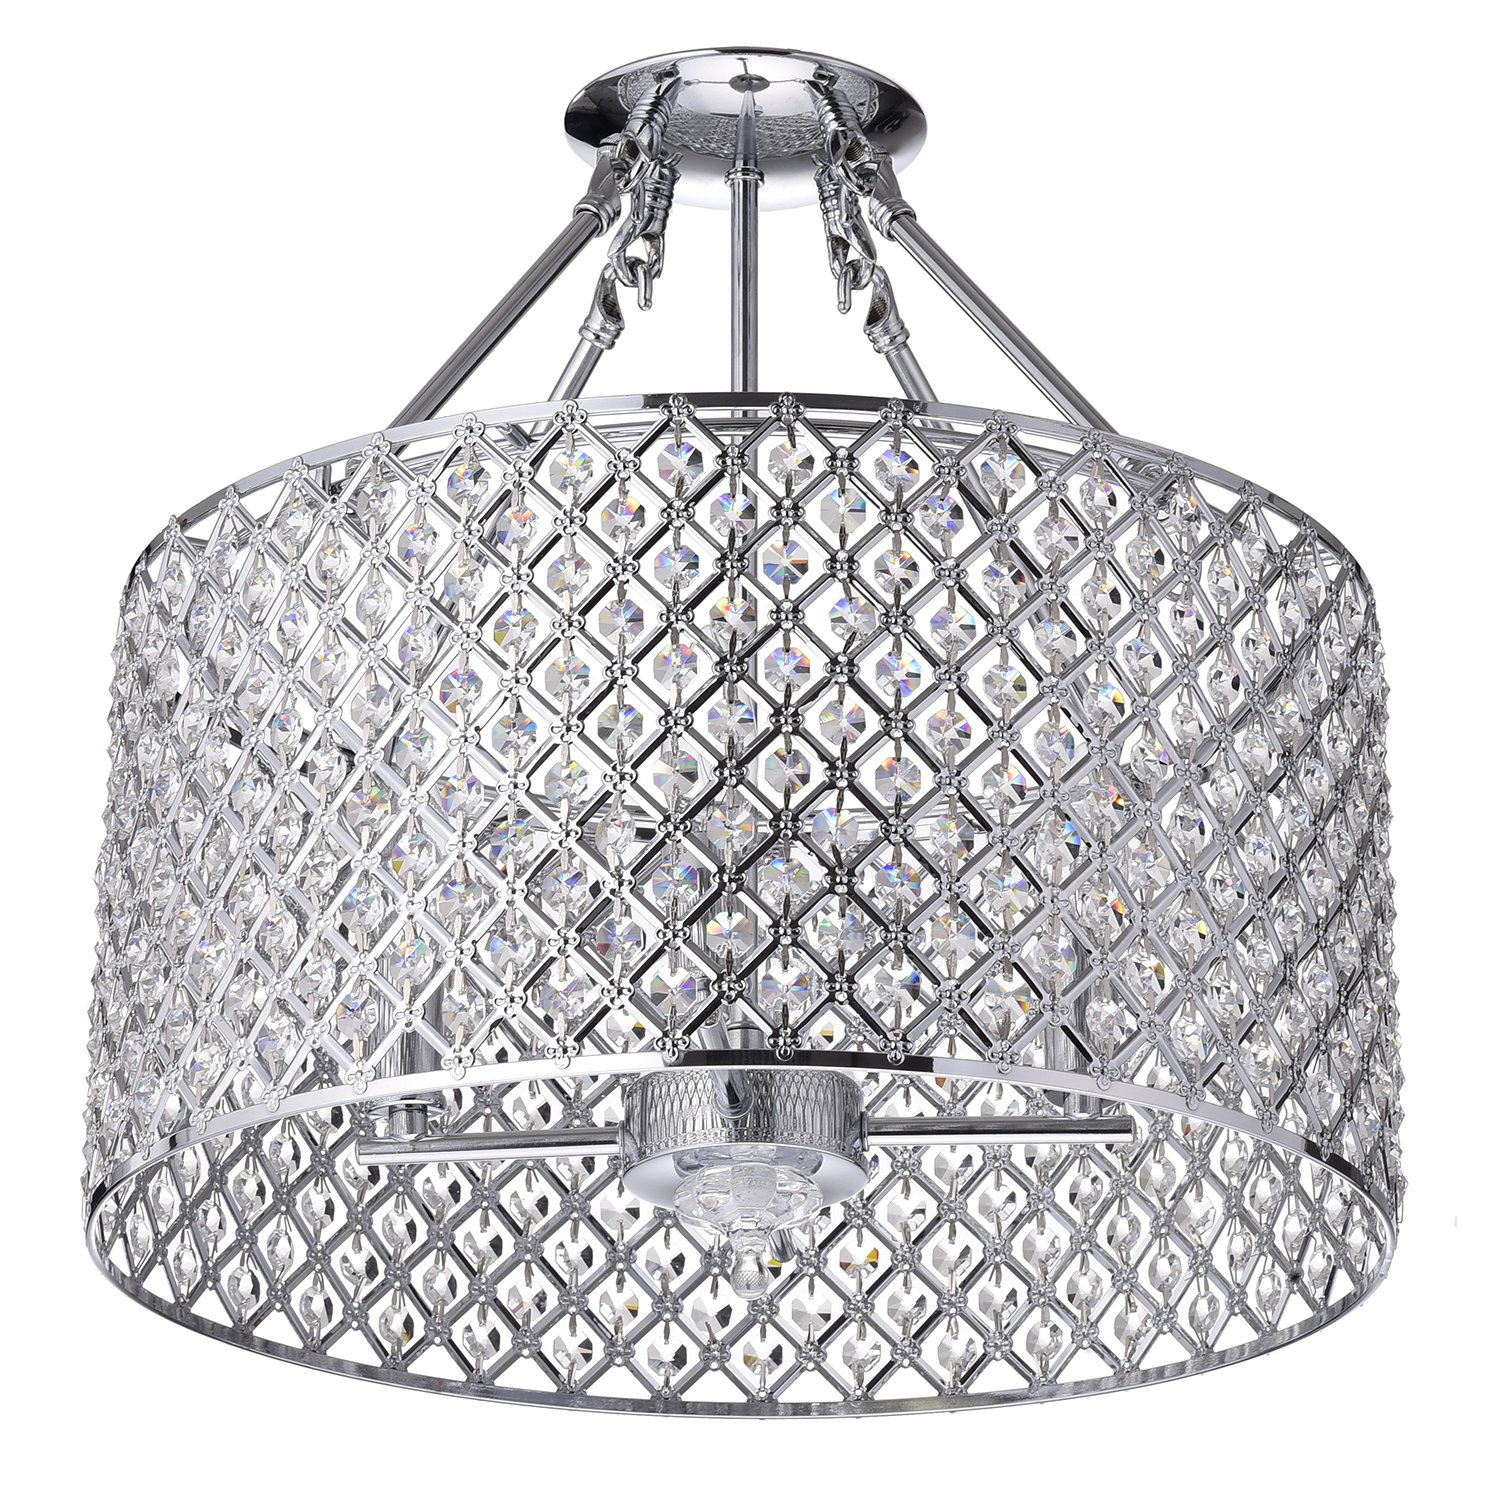 Marya 4 light chrome round shade crystal semi flush mount chandelier marya 4 light chrome round shade crystal semi flush mount chandelier ceiling fixture beaded drum shade amazon aloadofball Images